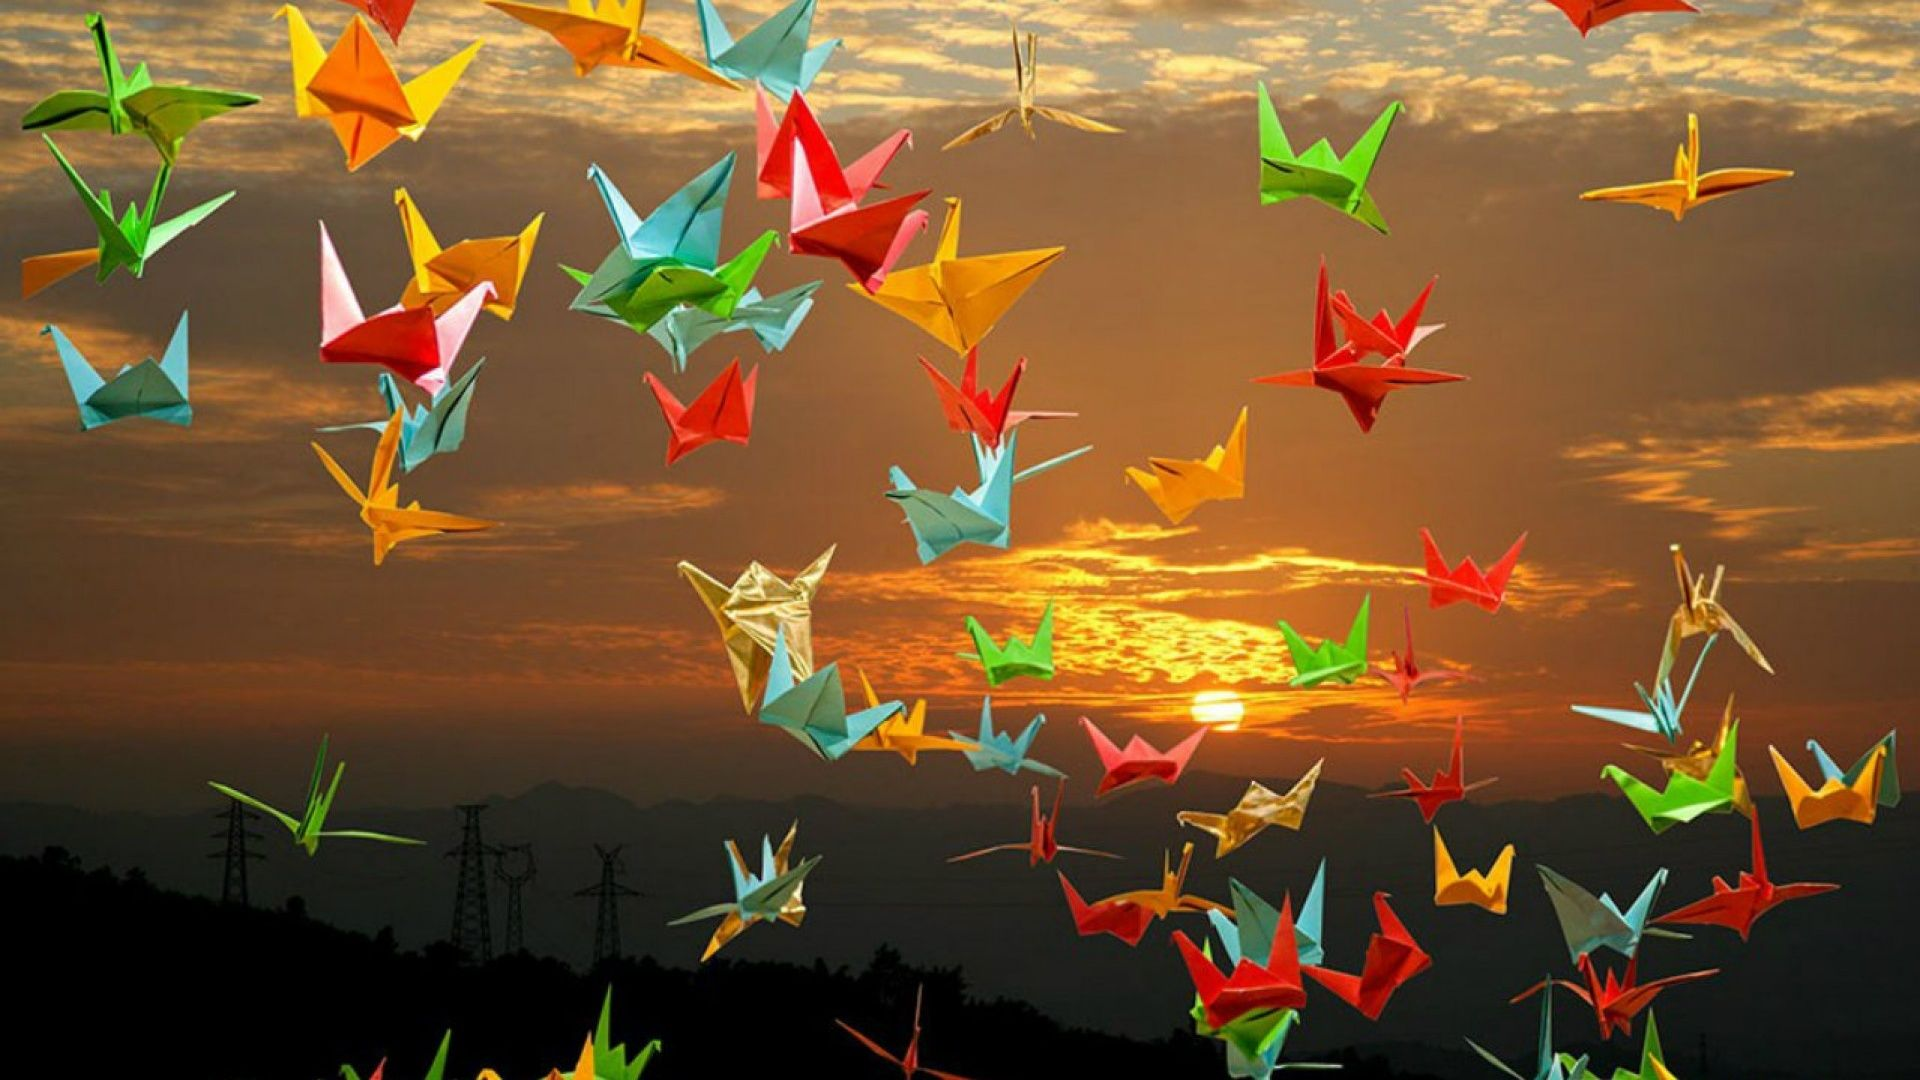 Origami background picture hd